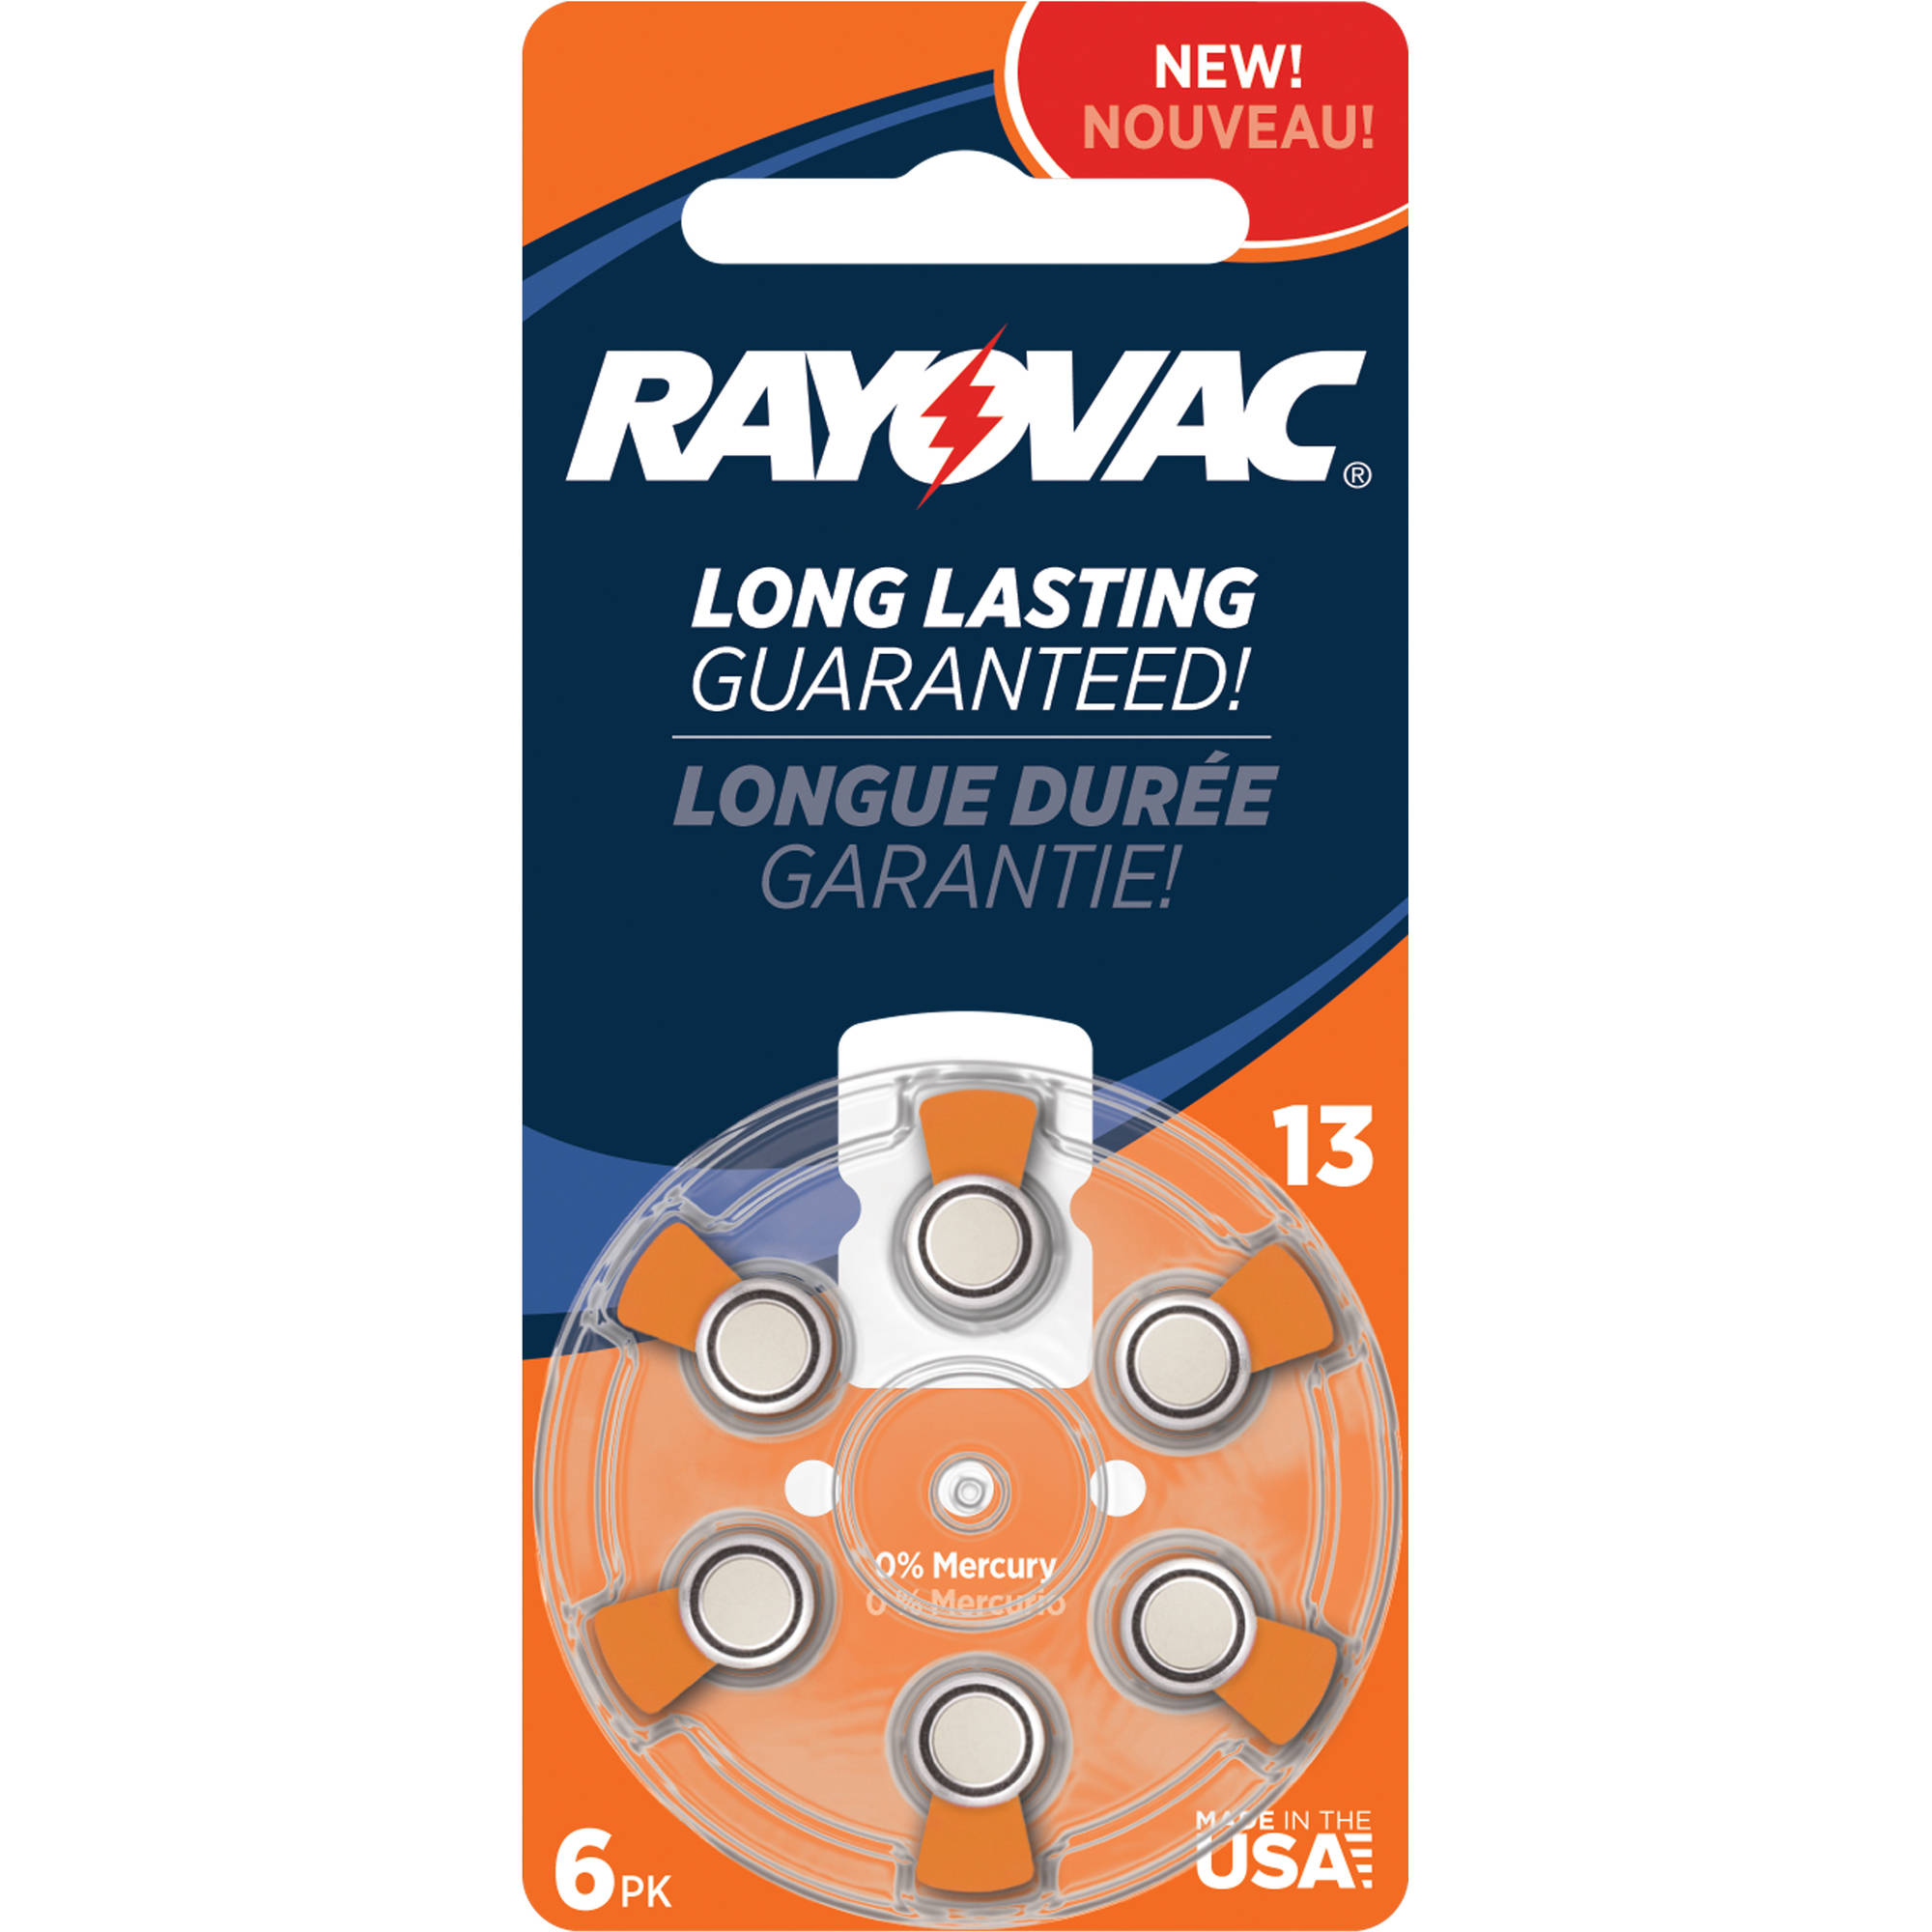 Rayovac Size 13 Hearing Aid Battery Mercury Free Batteries, 6pk